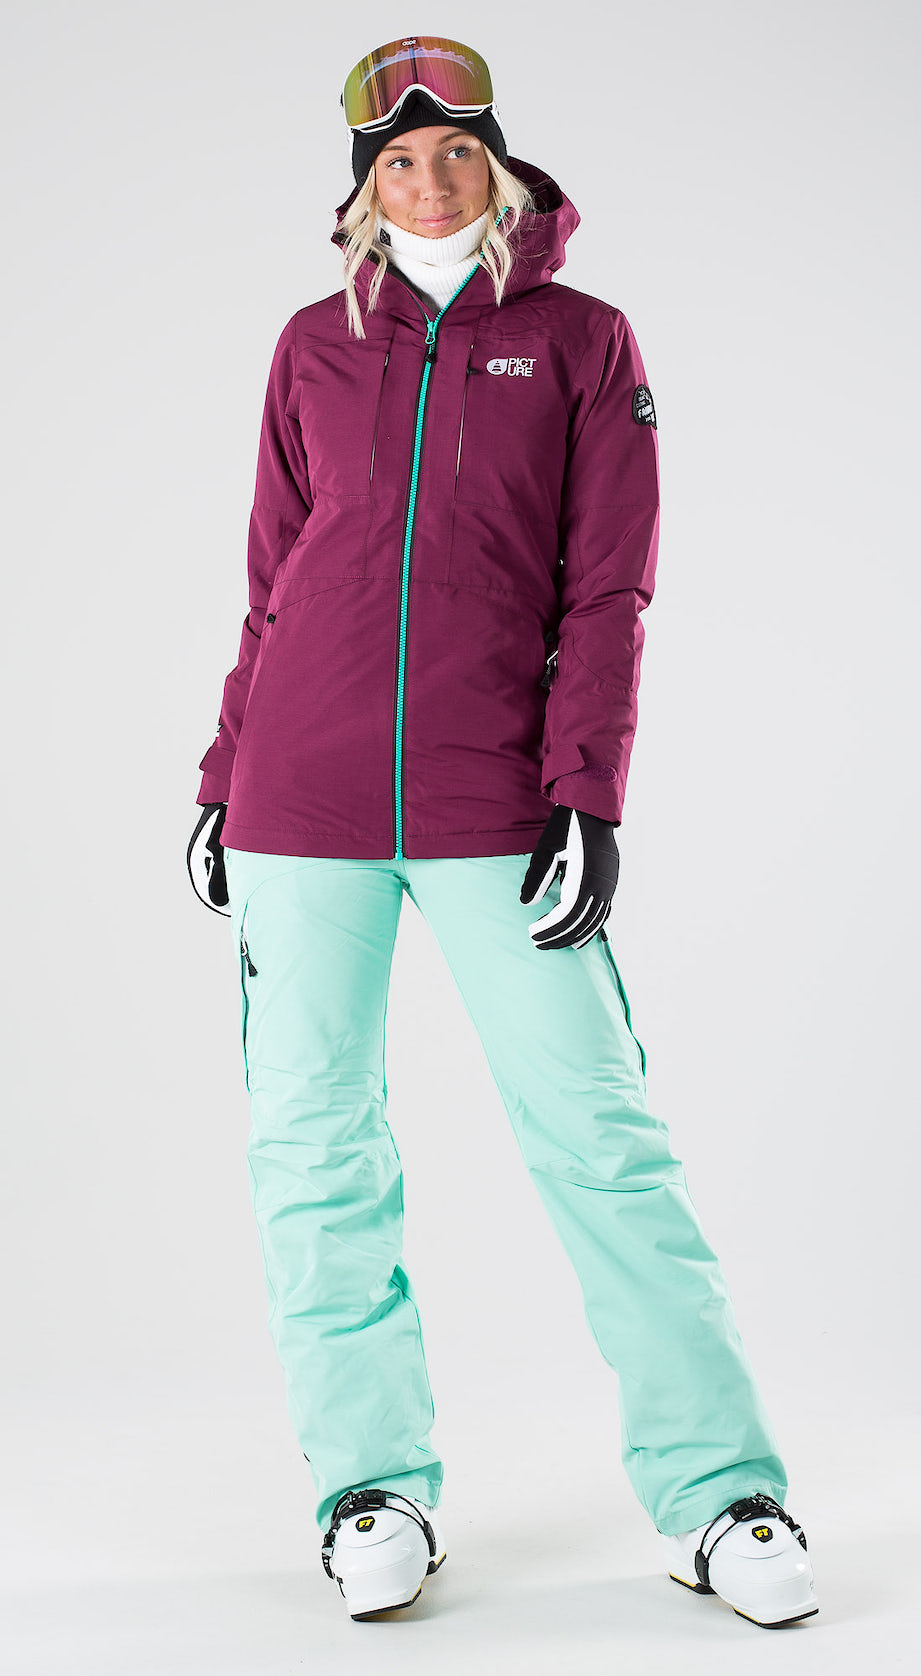 Picture Apply Raspberry Ski clothing Multi